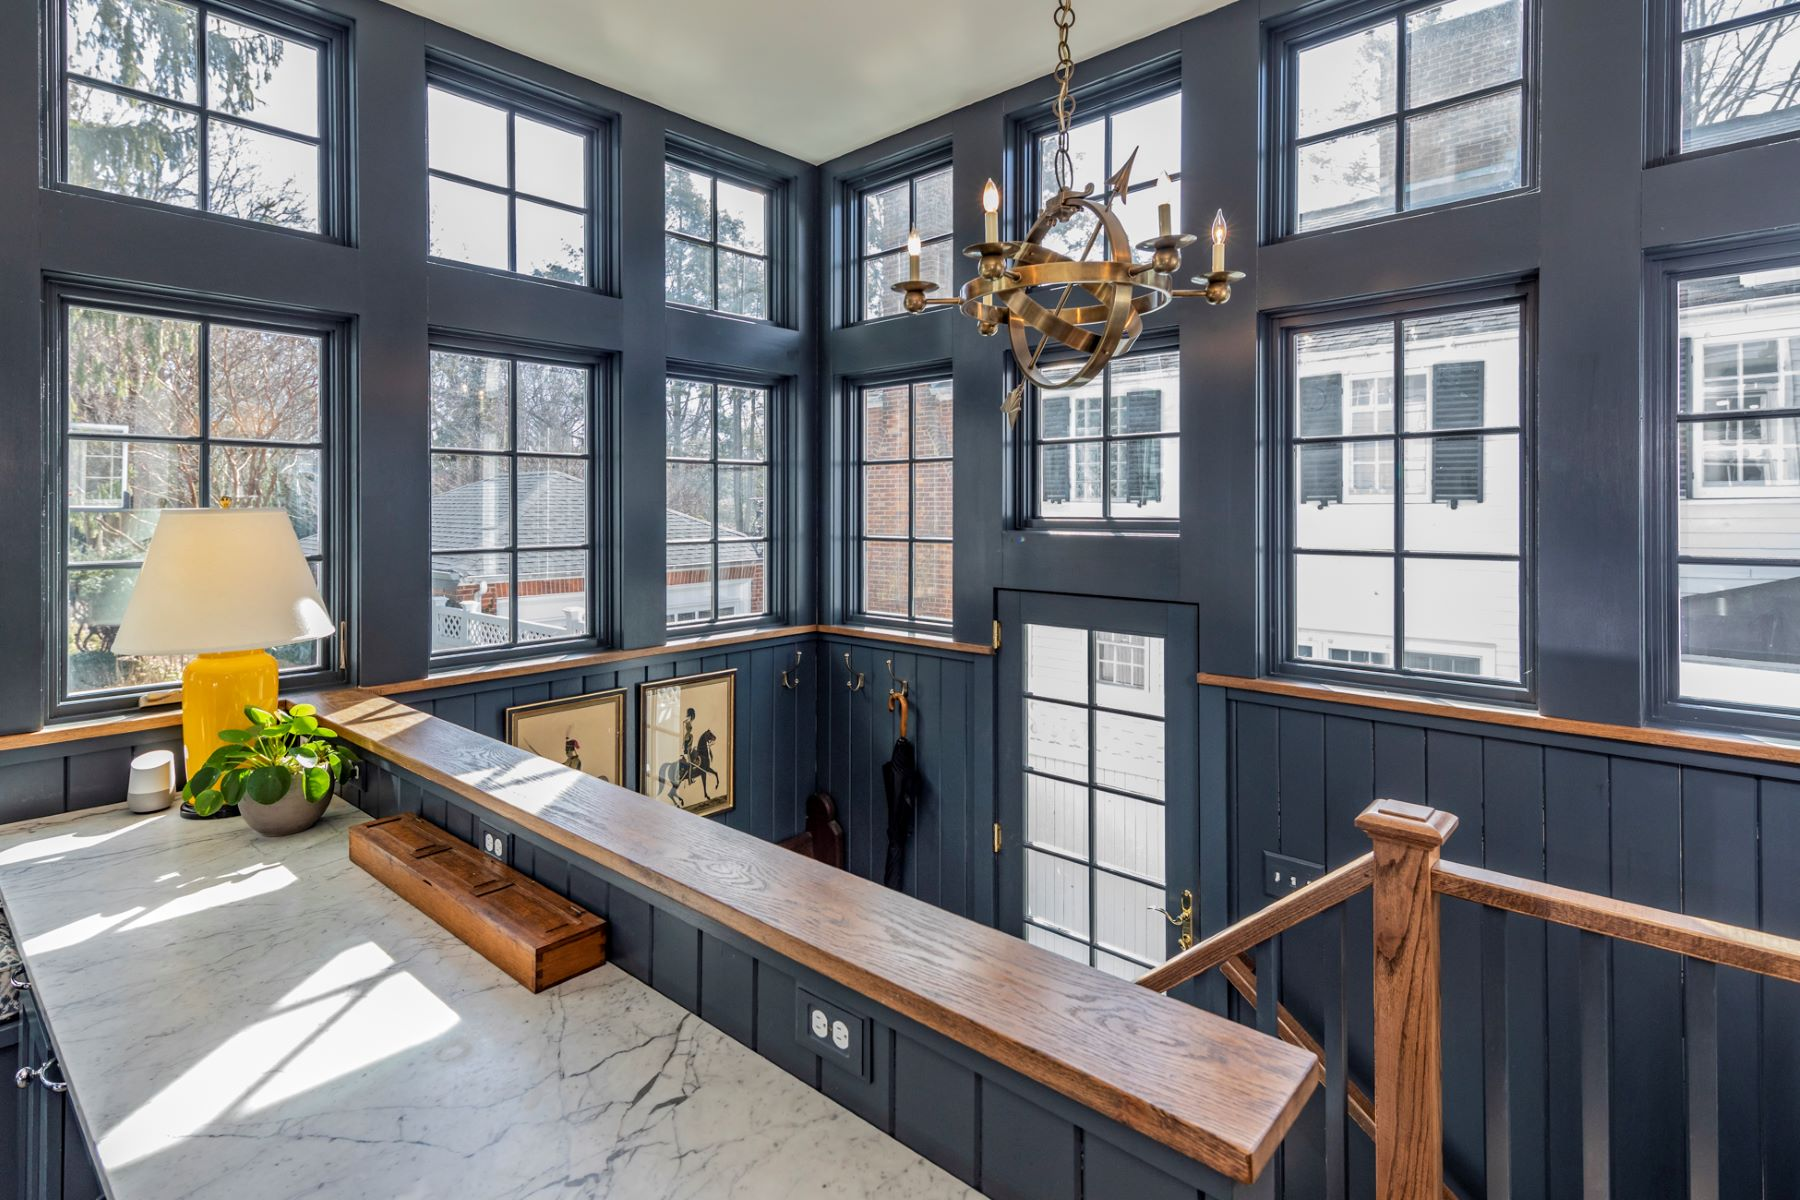 Additional photo for property listing at Artfully Renovated Period Home, Right in Town 114 Mercer Street, Princeton, New Jersey 08540 United States